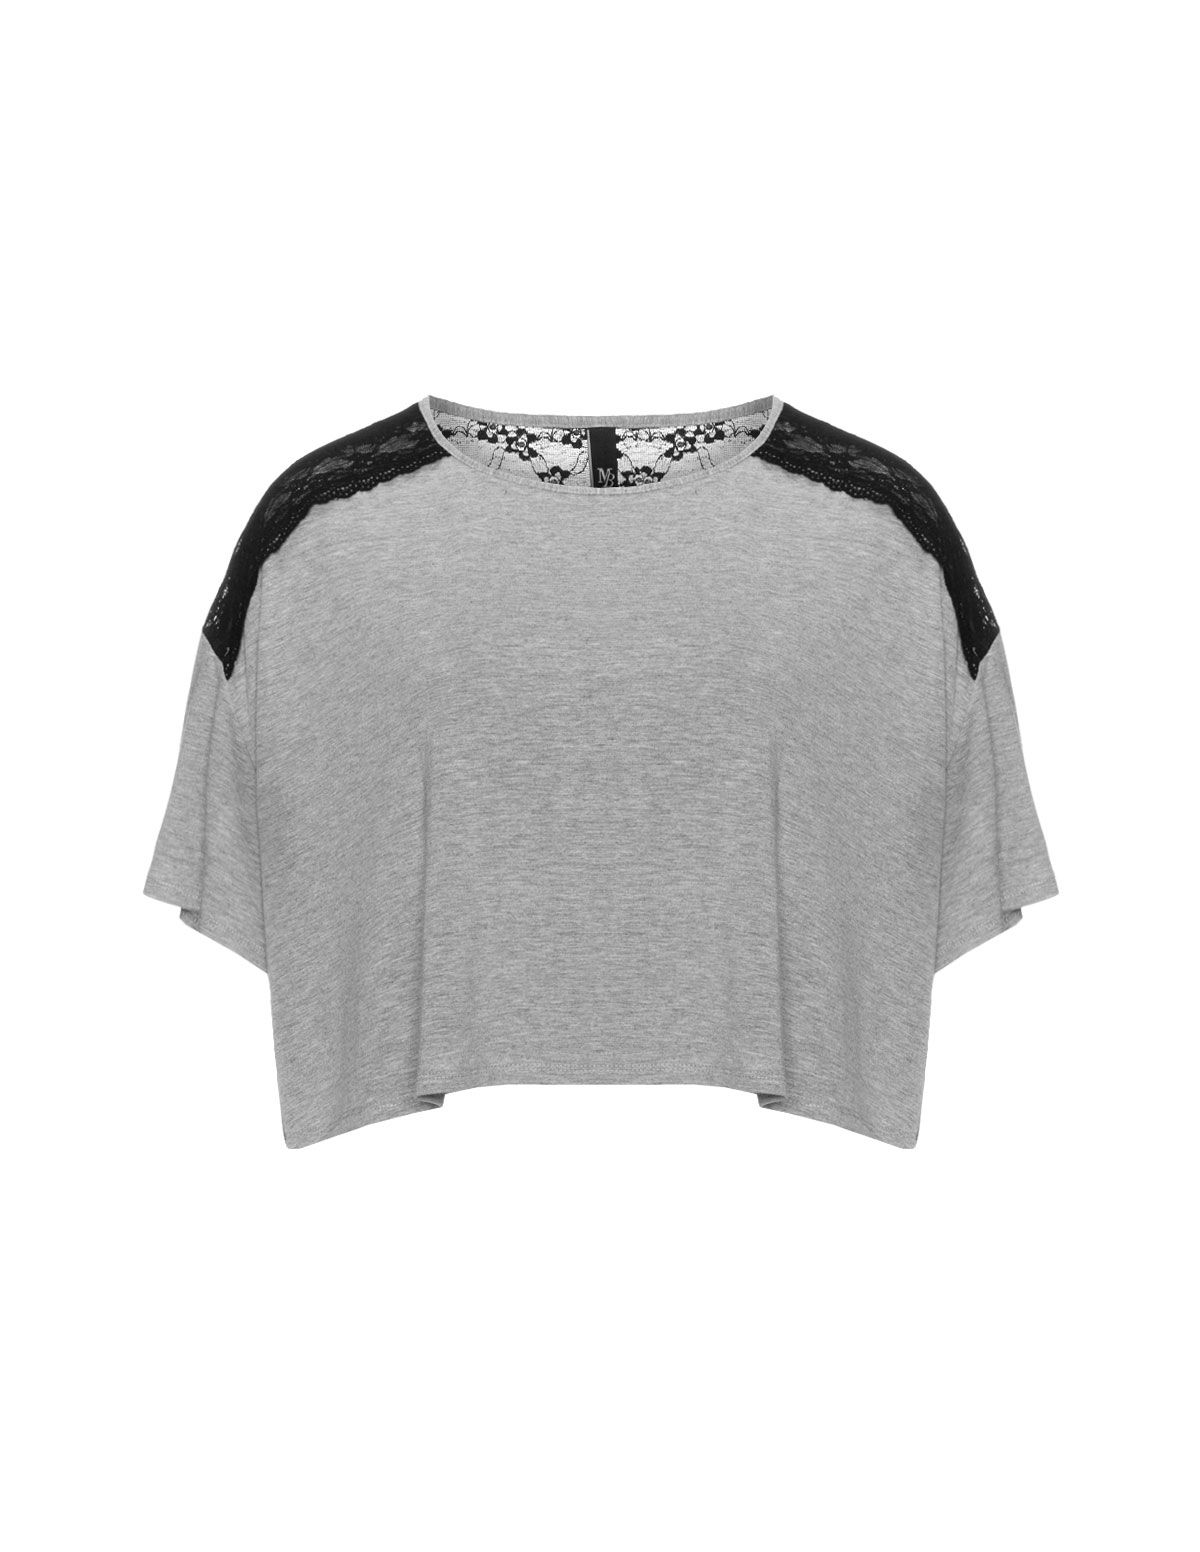 Manon Baptiste Cropped lace t-shirt in Grey / Black